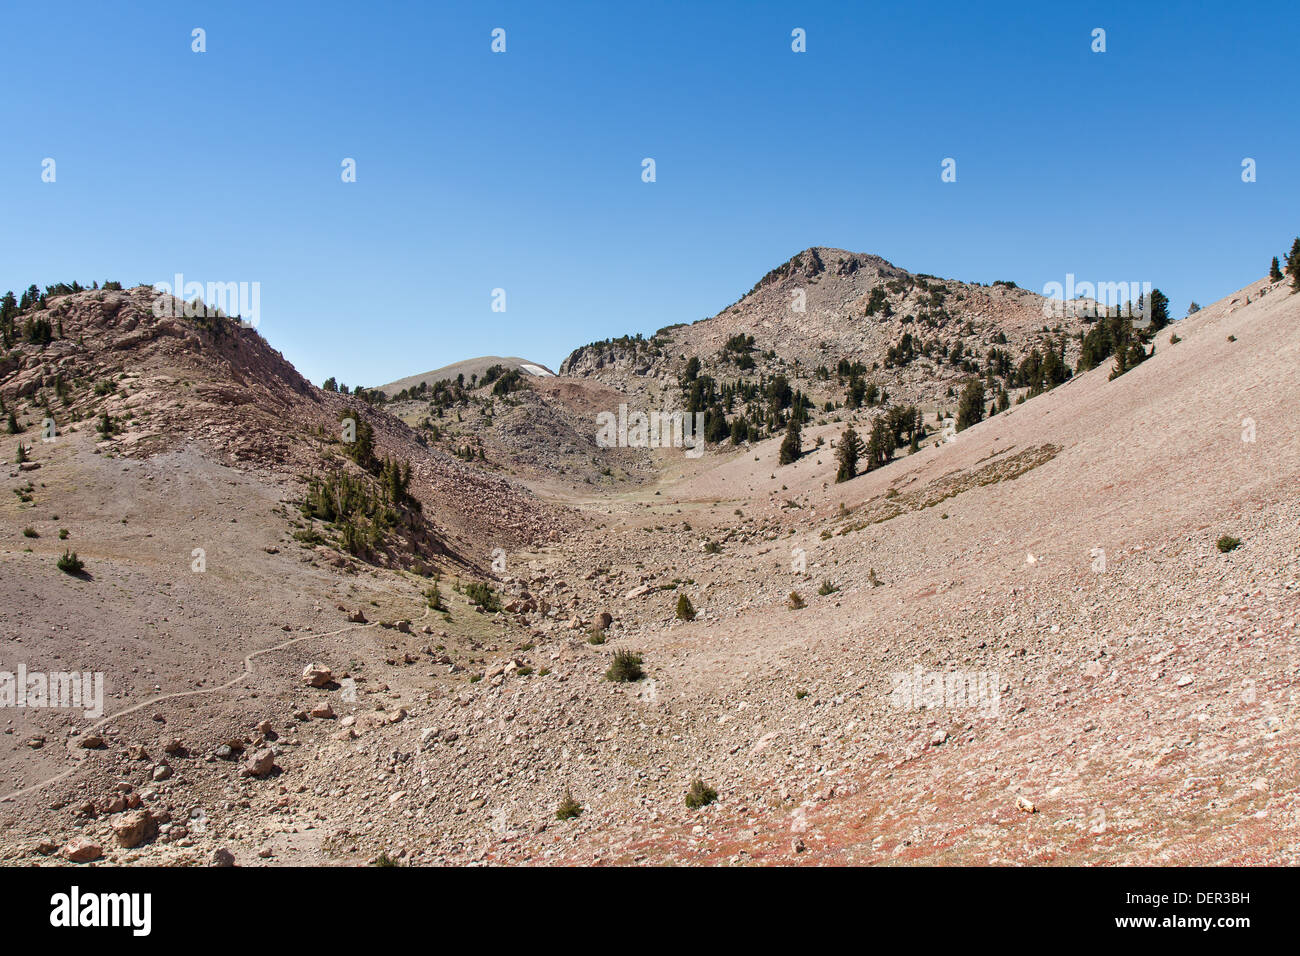 Mount Lassen exploded into a cataclysmic eruption nearly 100 years ago. Much of the surrounding area still shows the effect. - Stock Image